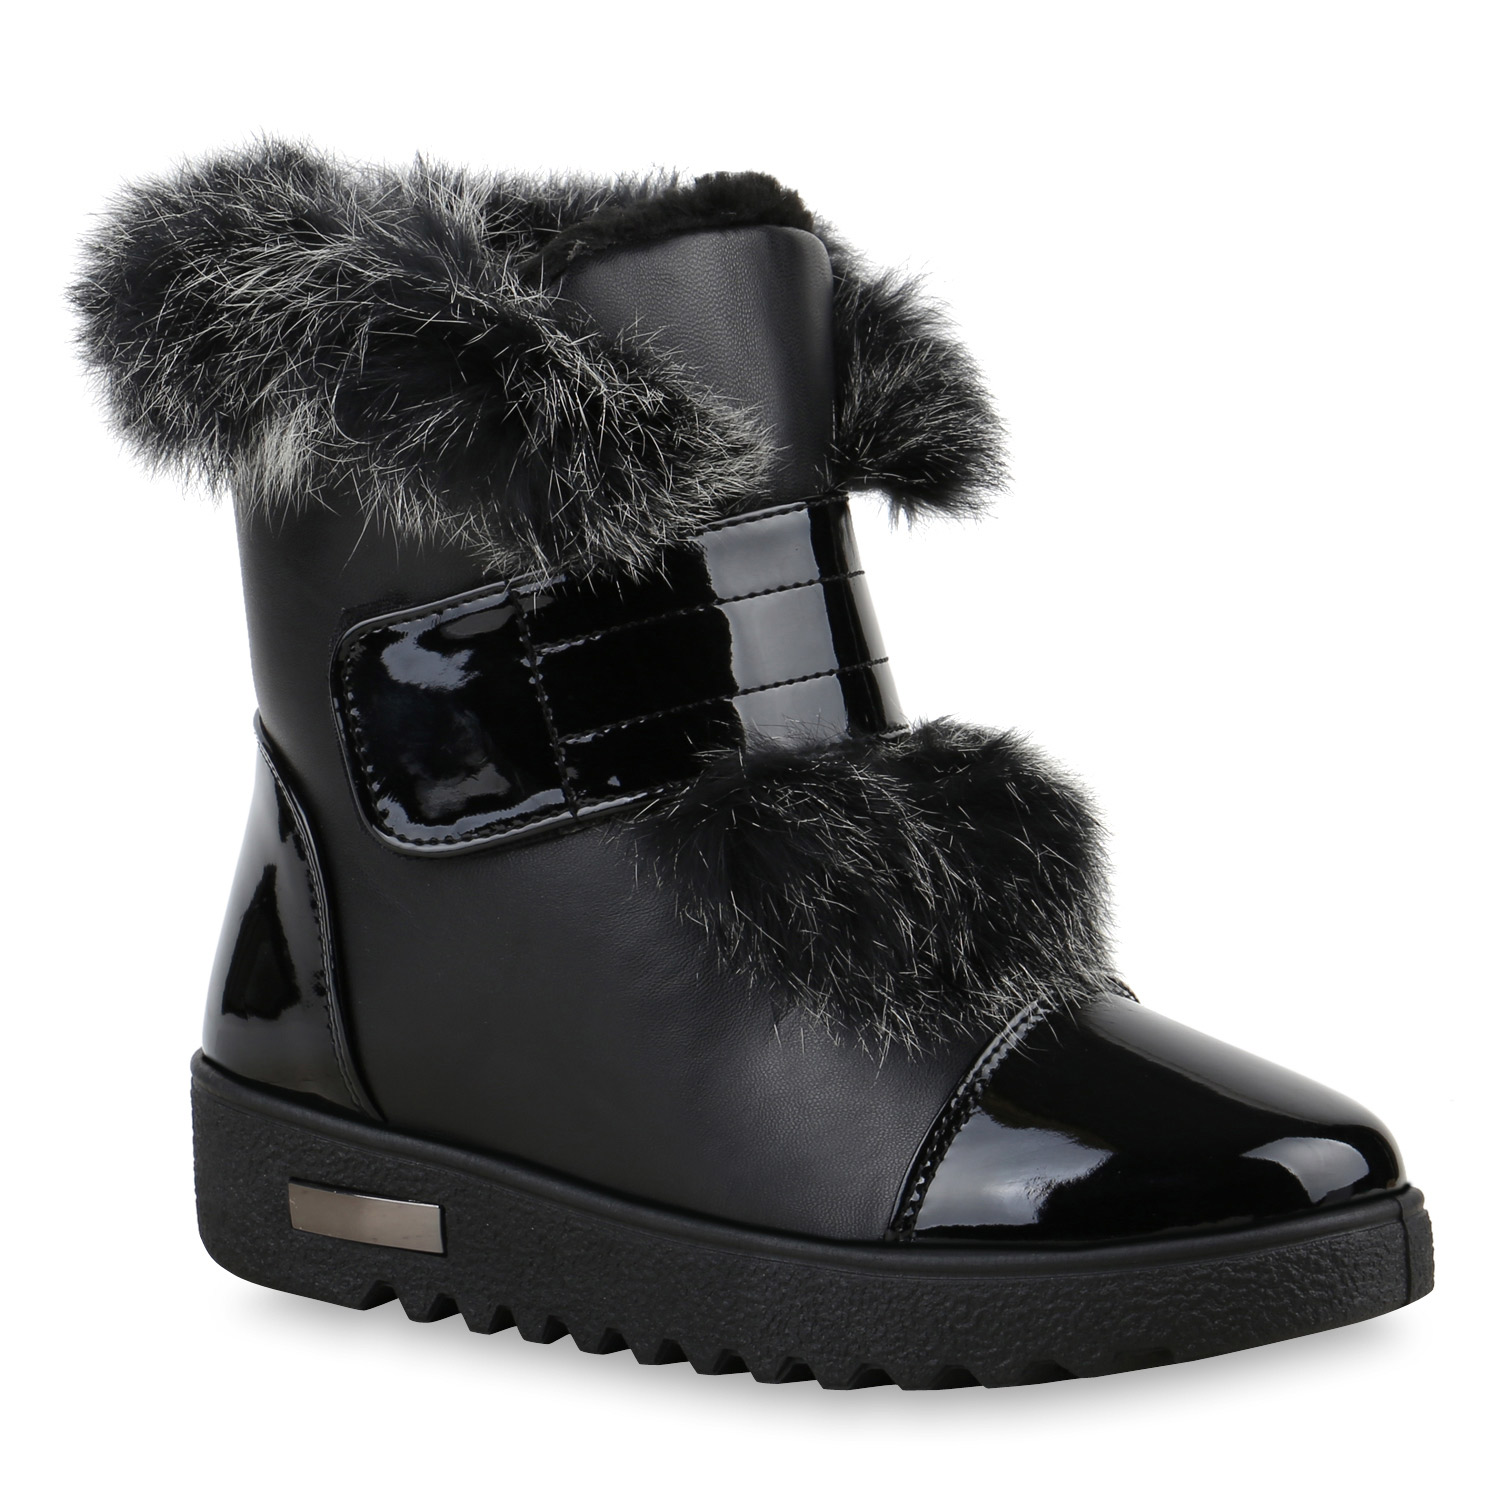 winterboots damen stiefeletten fell keil absatz warm. Black Bedroom Furniture Sets. Home Design Ideas